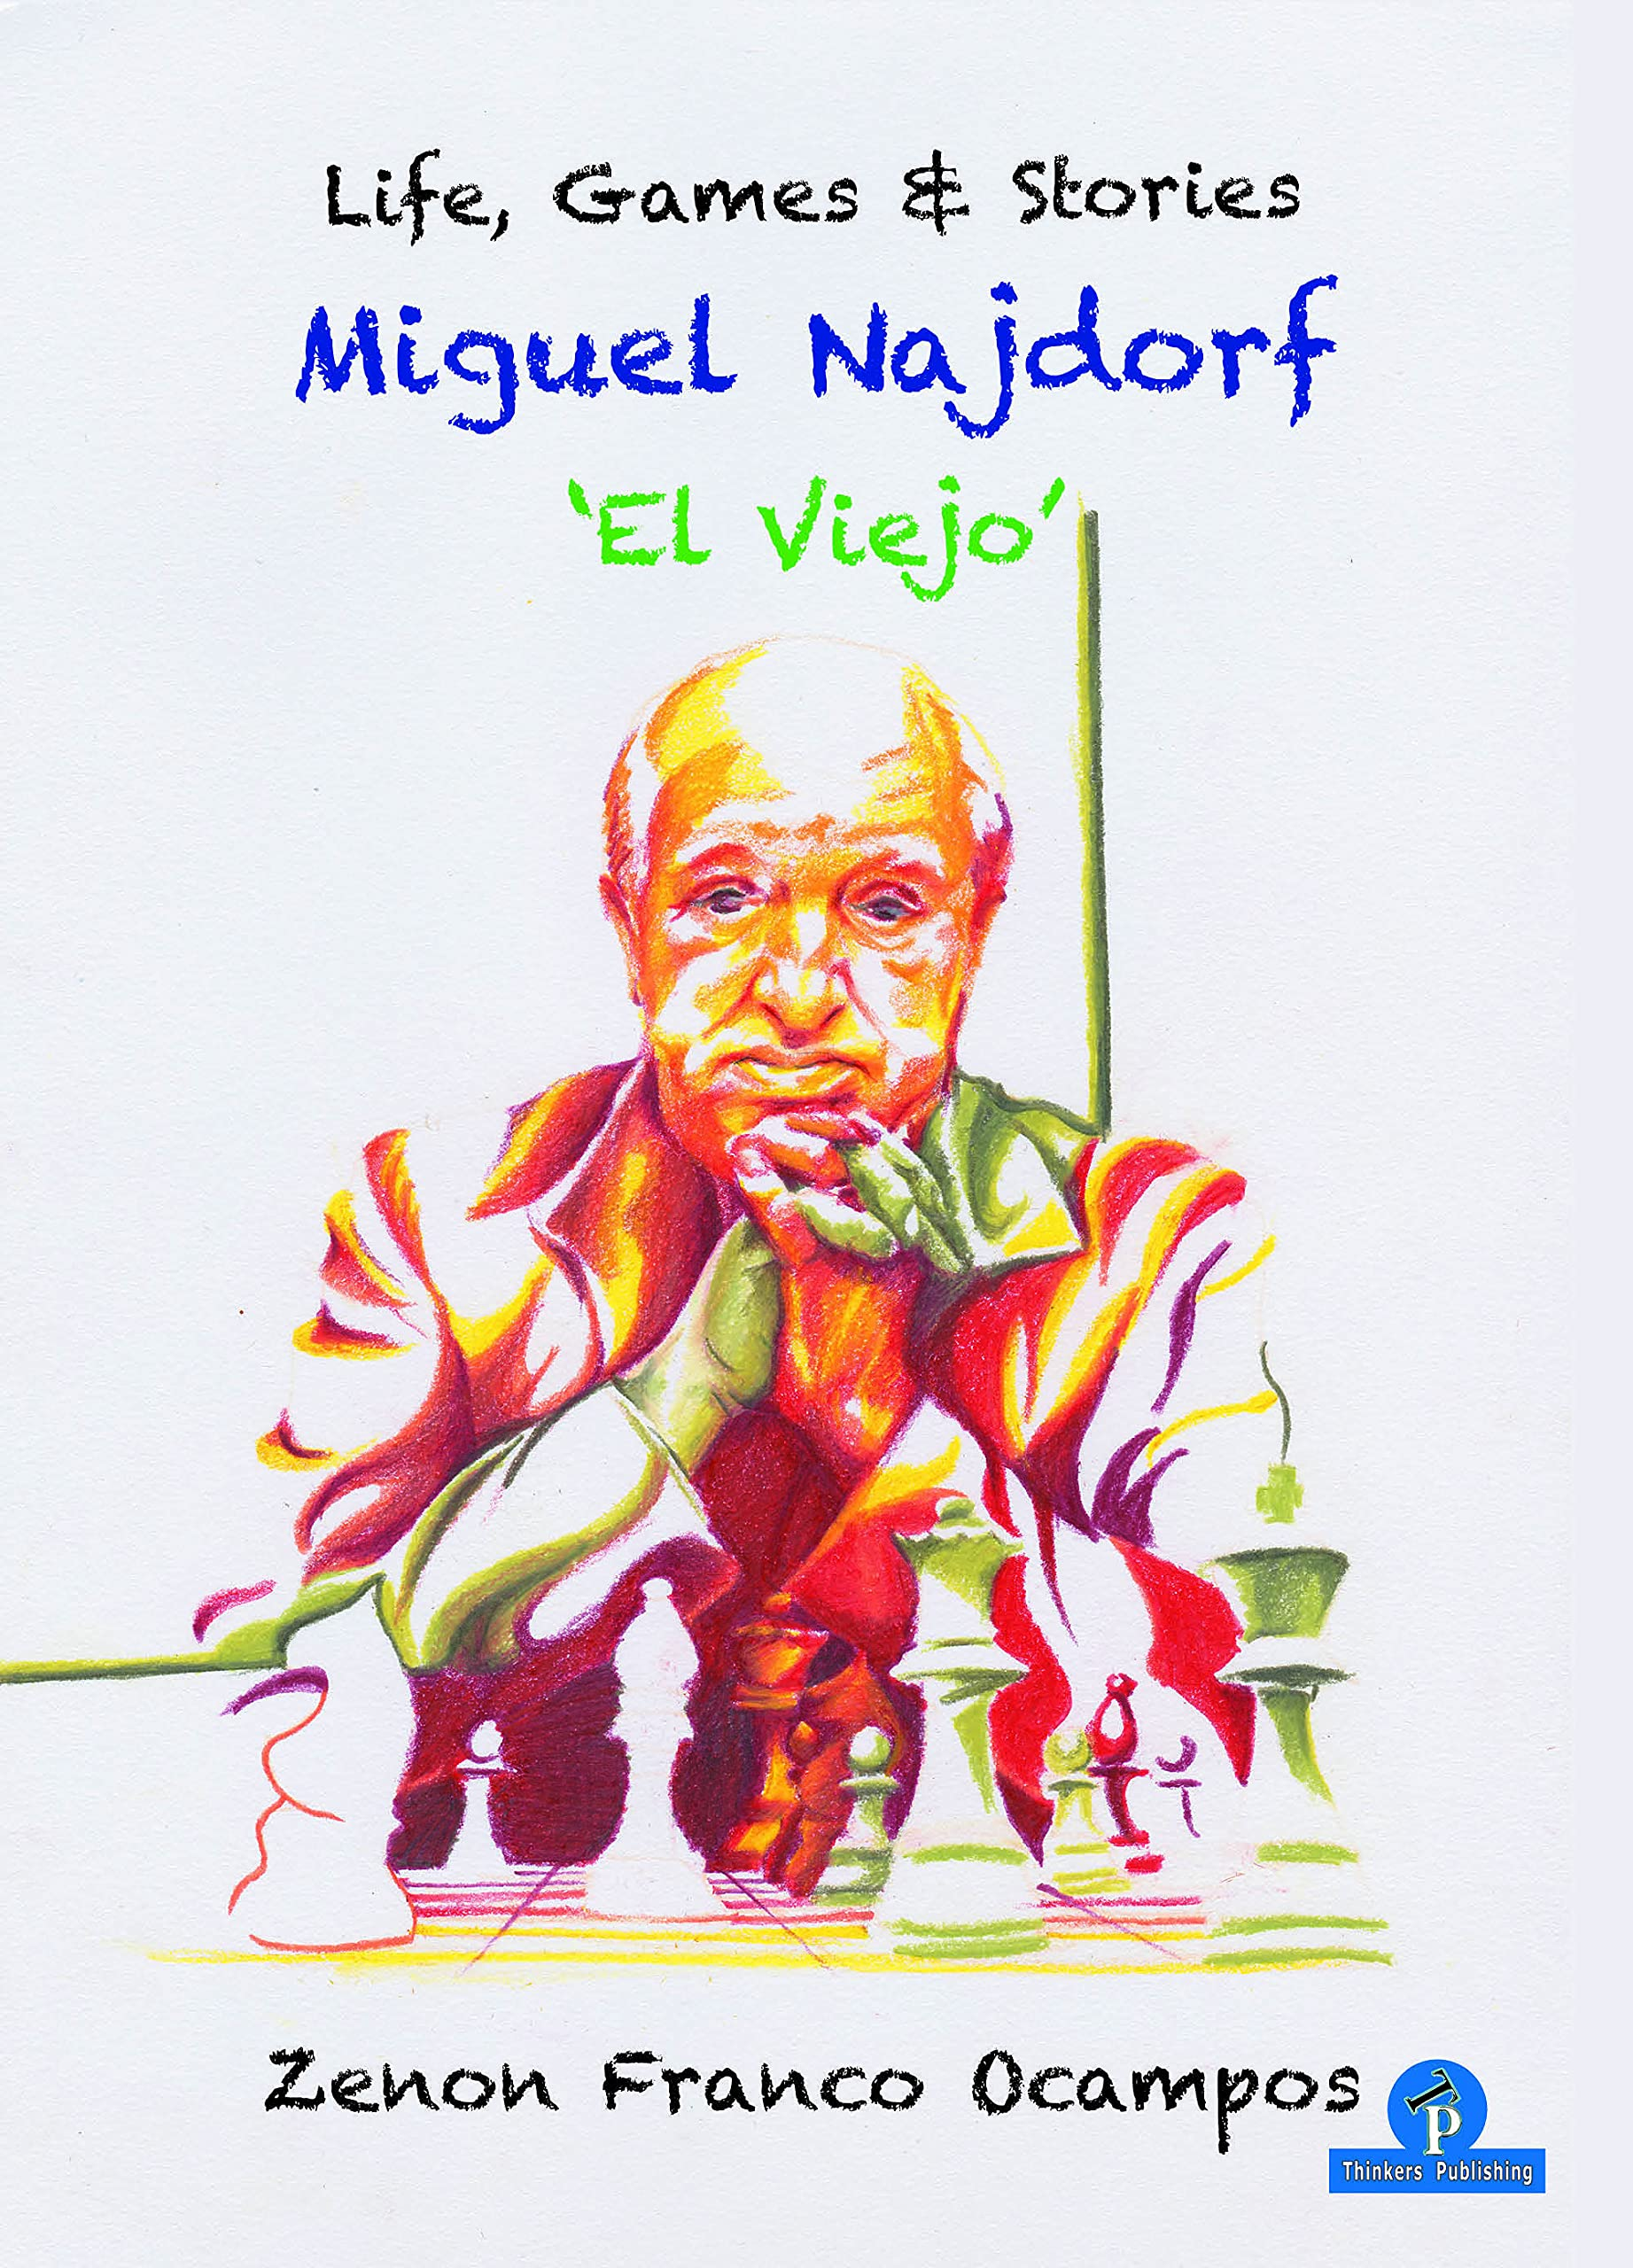 Miguel Najdorf - 'El Viejo' - Life, Games and Stories, Zenon Ocampos, Thinker's Publishing, 2 September 2021, ISBN-13  :  978-9464201130